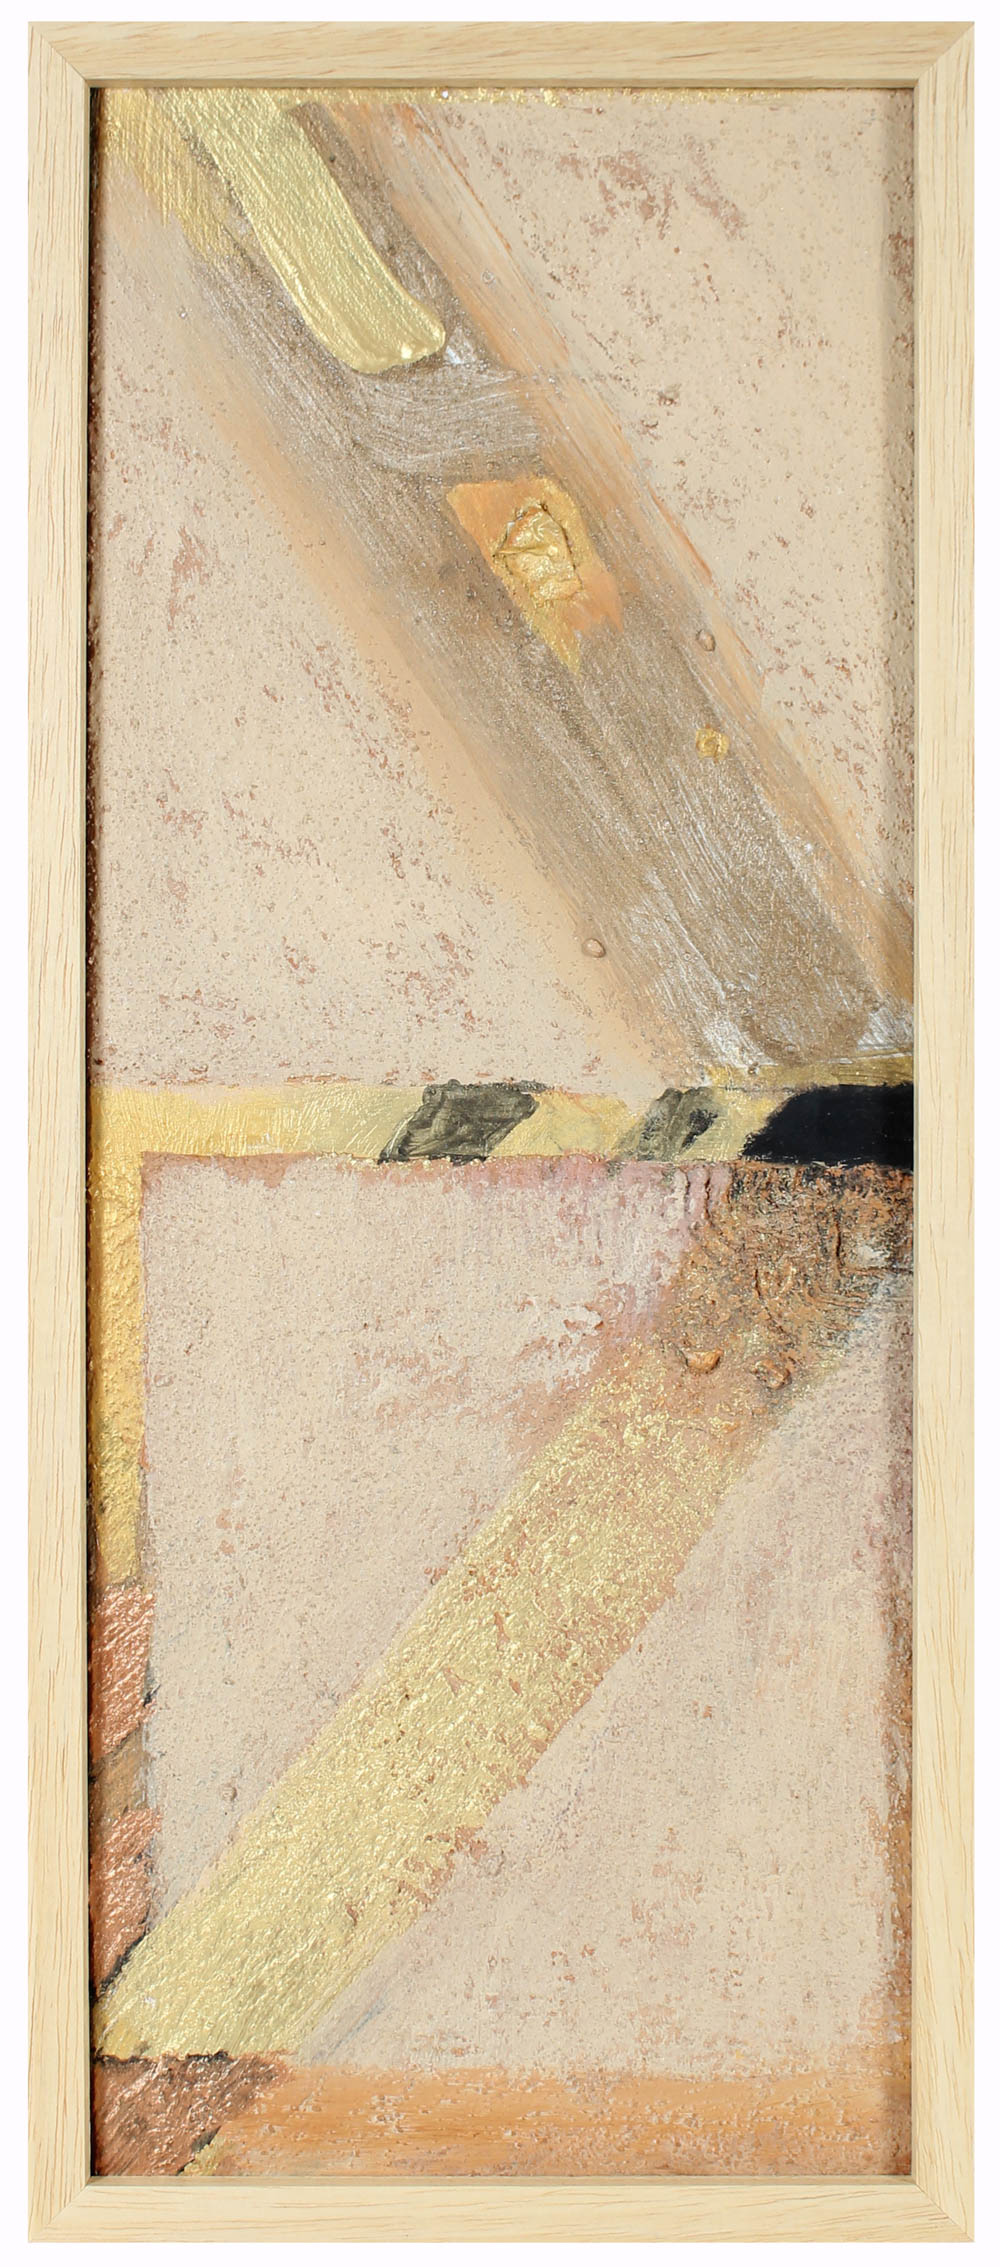 Mixed Media Abstract Sculpture<br>Sand, Cement & Paint on Wood<br><br>#95526